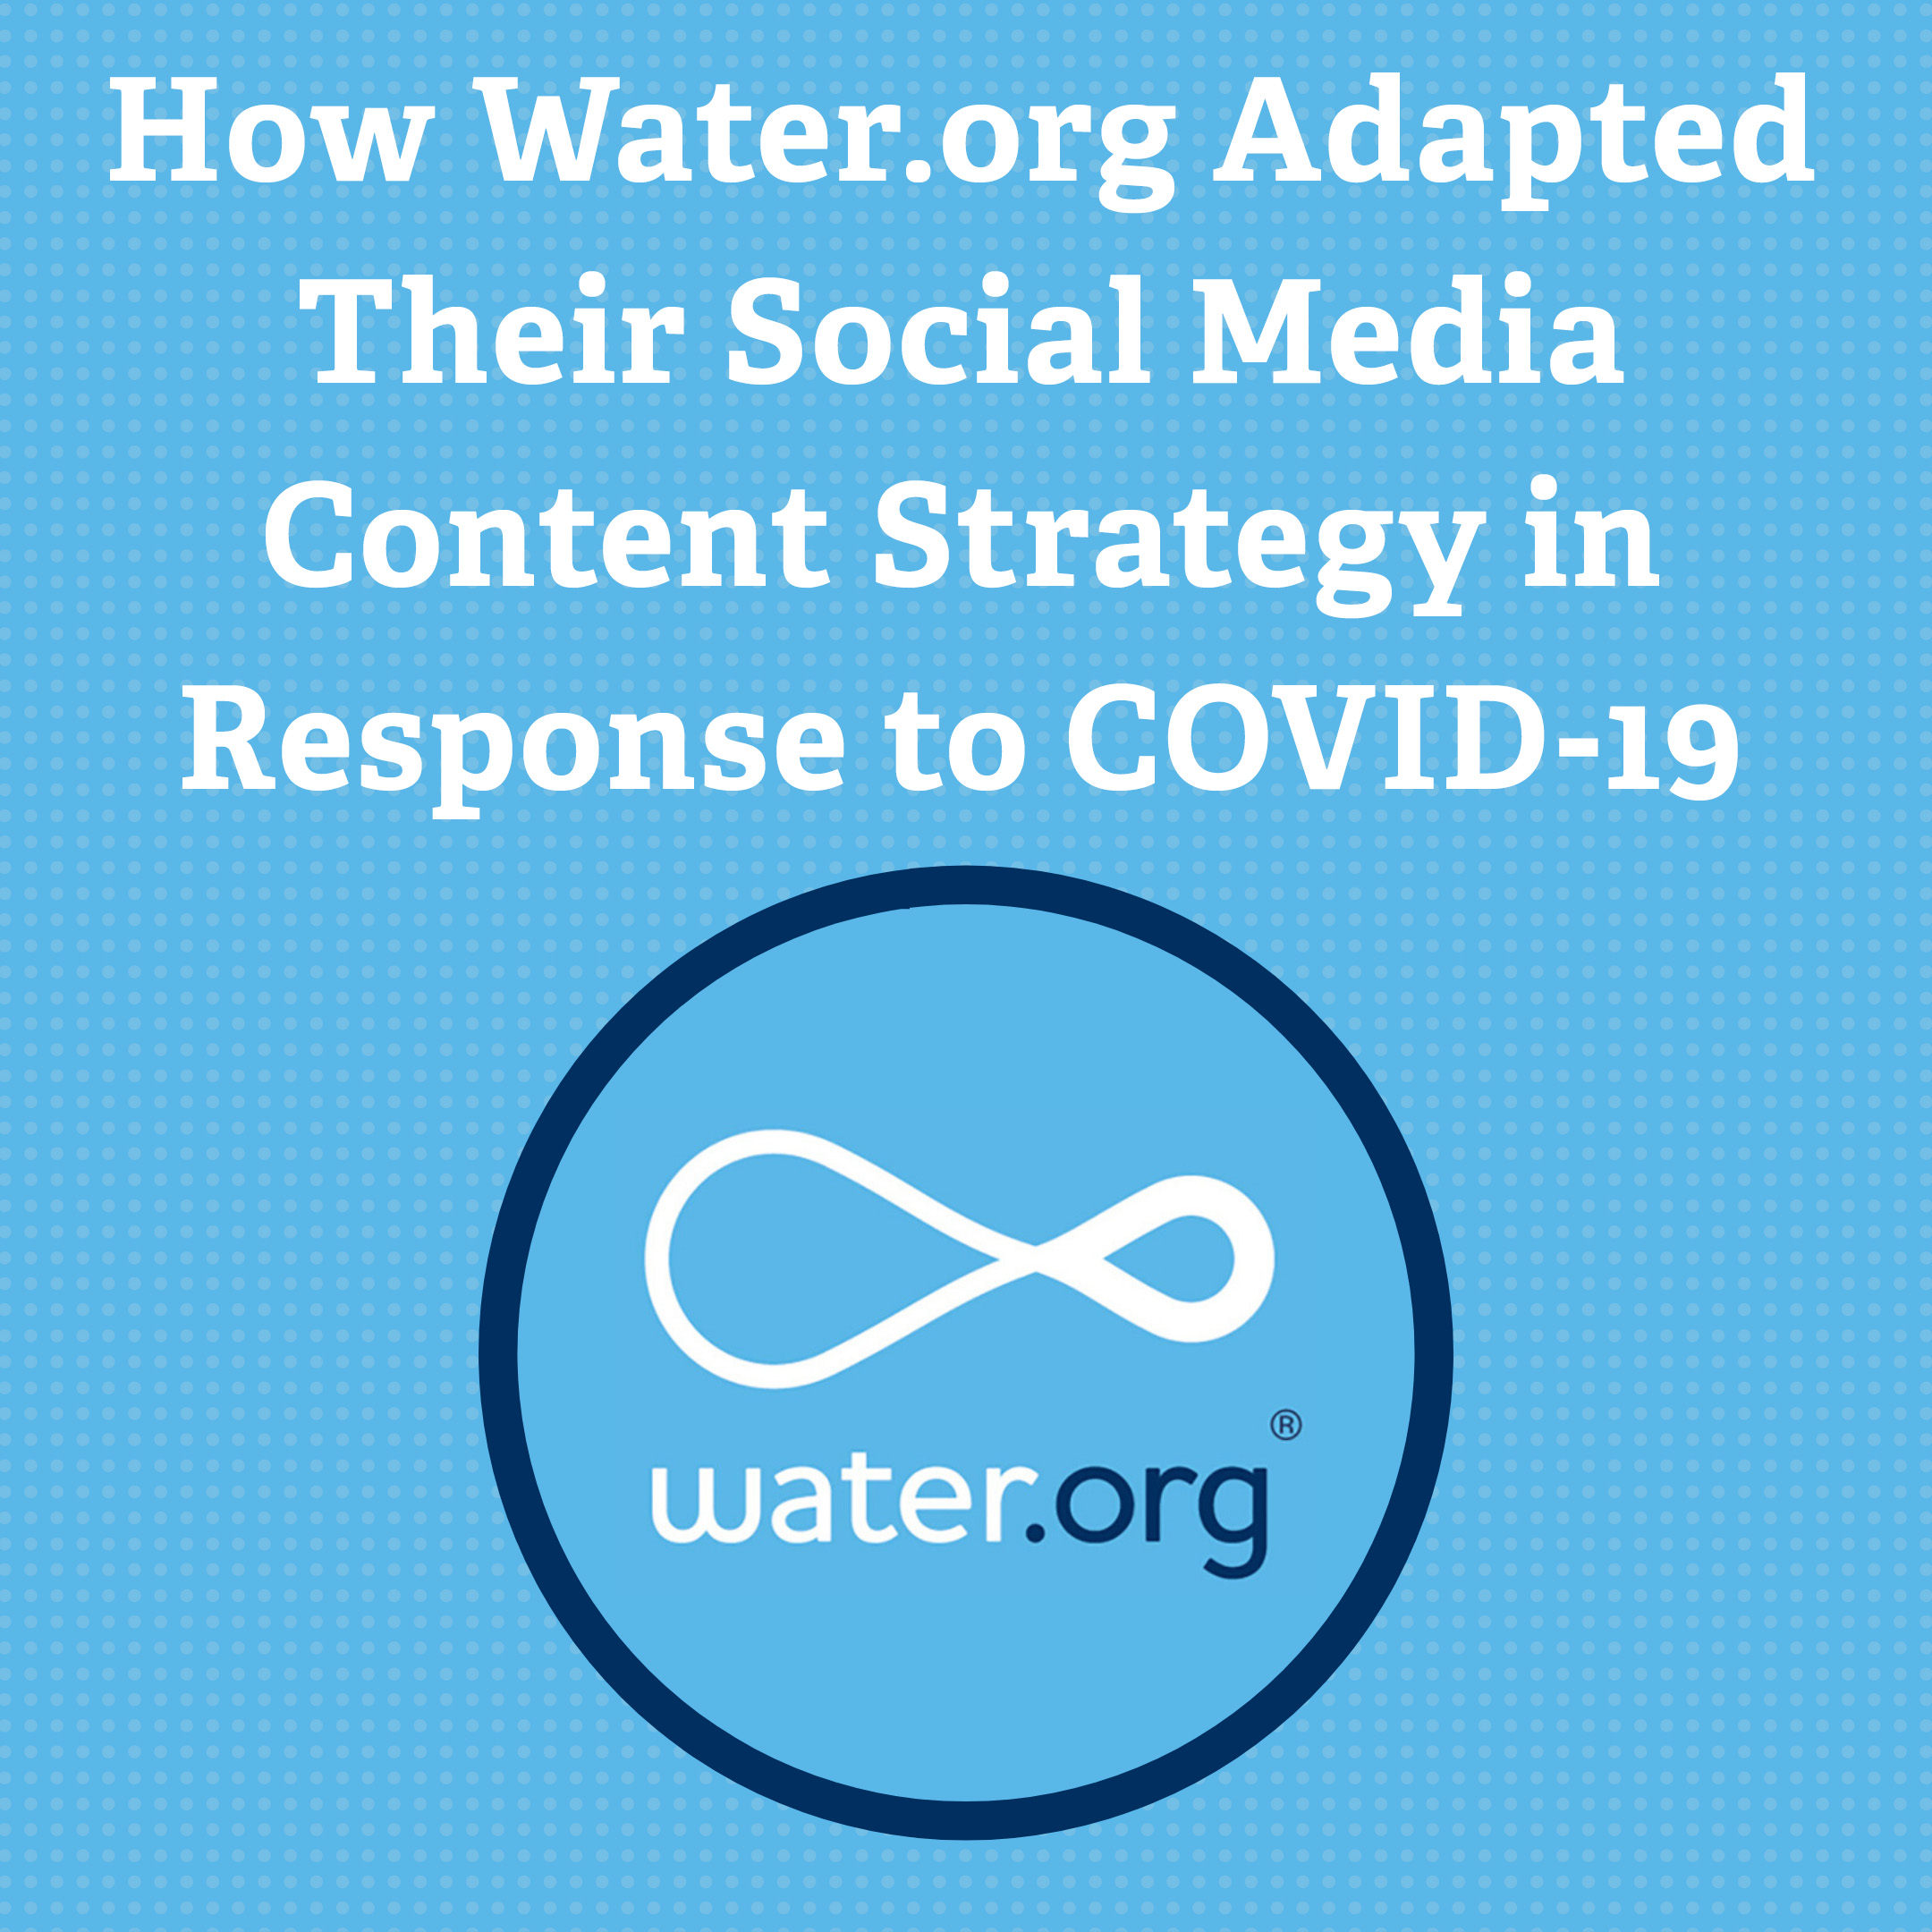 How Water.org Adapted Their Social Media Content Strategy in Response to COVID-19